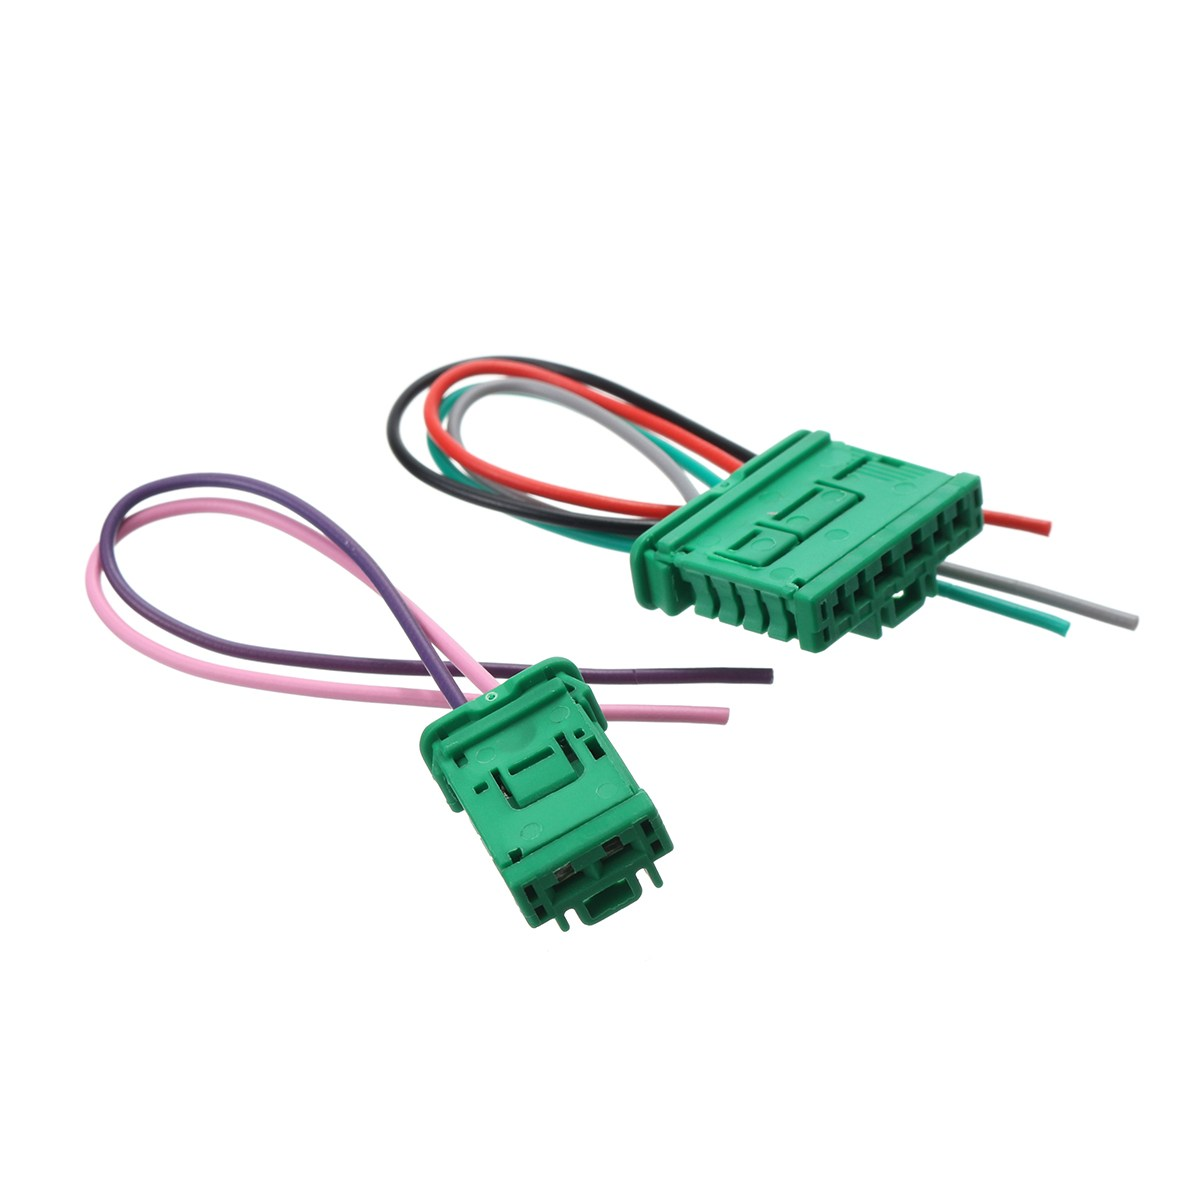 Kroak Heater Resistor Wiring Harness Loom 27150ed70b For Citroen Peugeot Renault Megane Scenic In Cables Adapters Sockets From